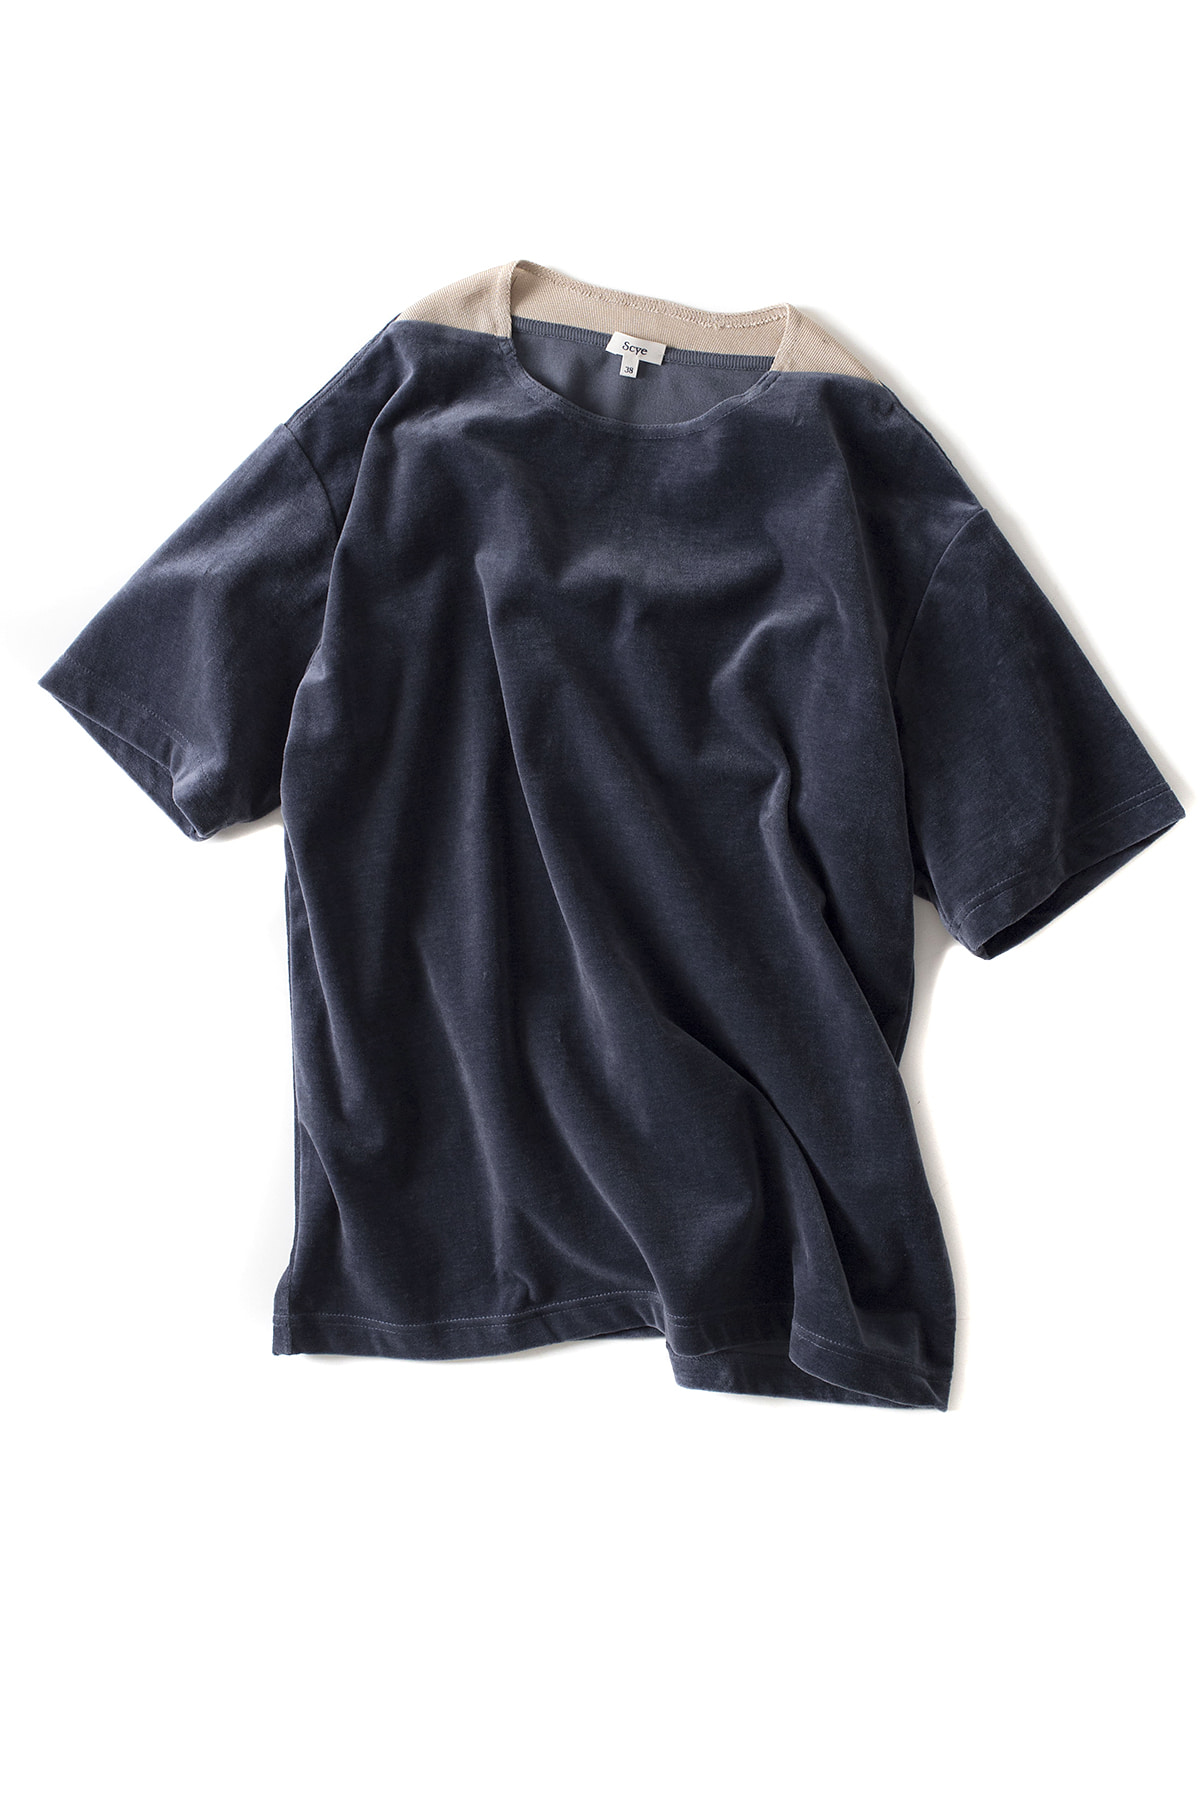 Scye : Cotton Velours T-Shirt (Smoke Blue)